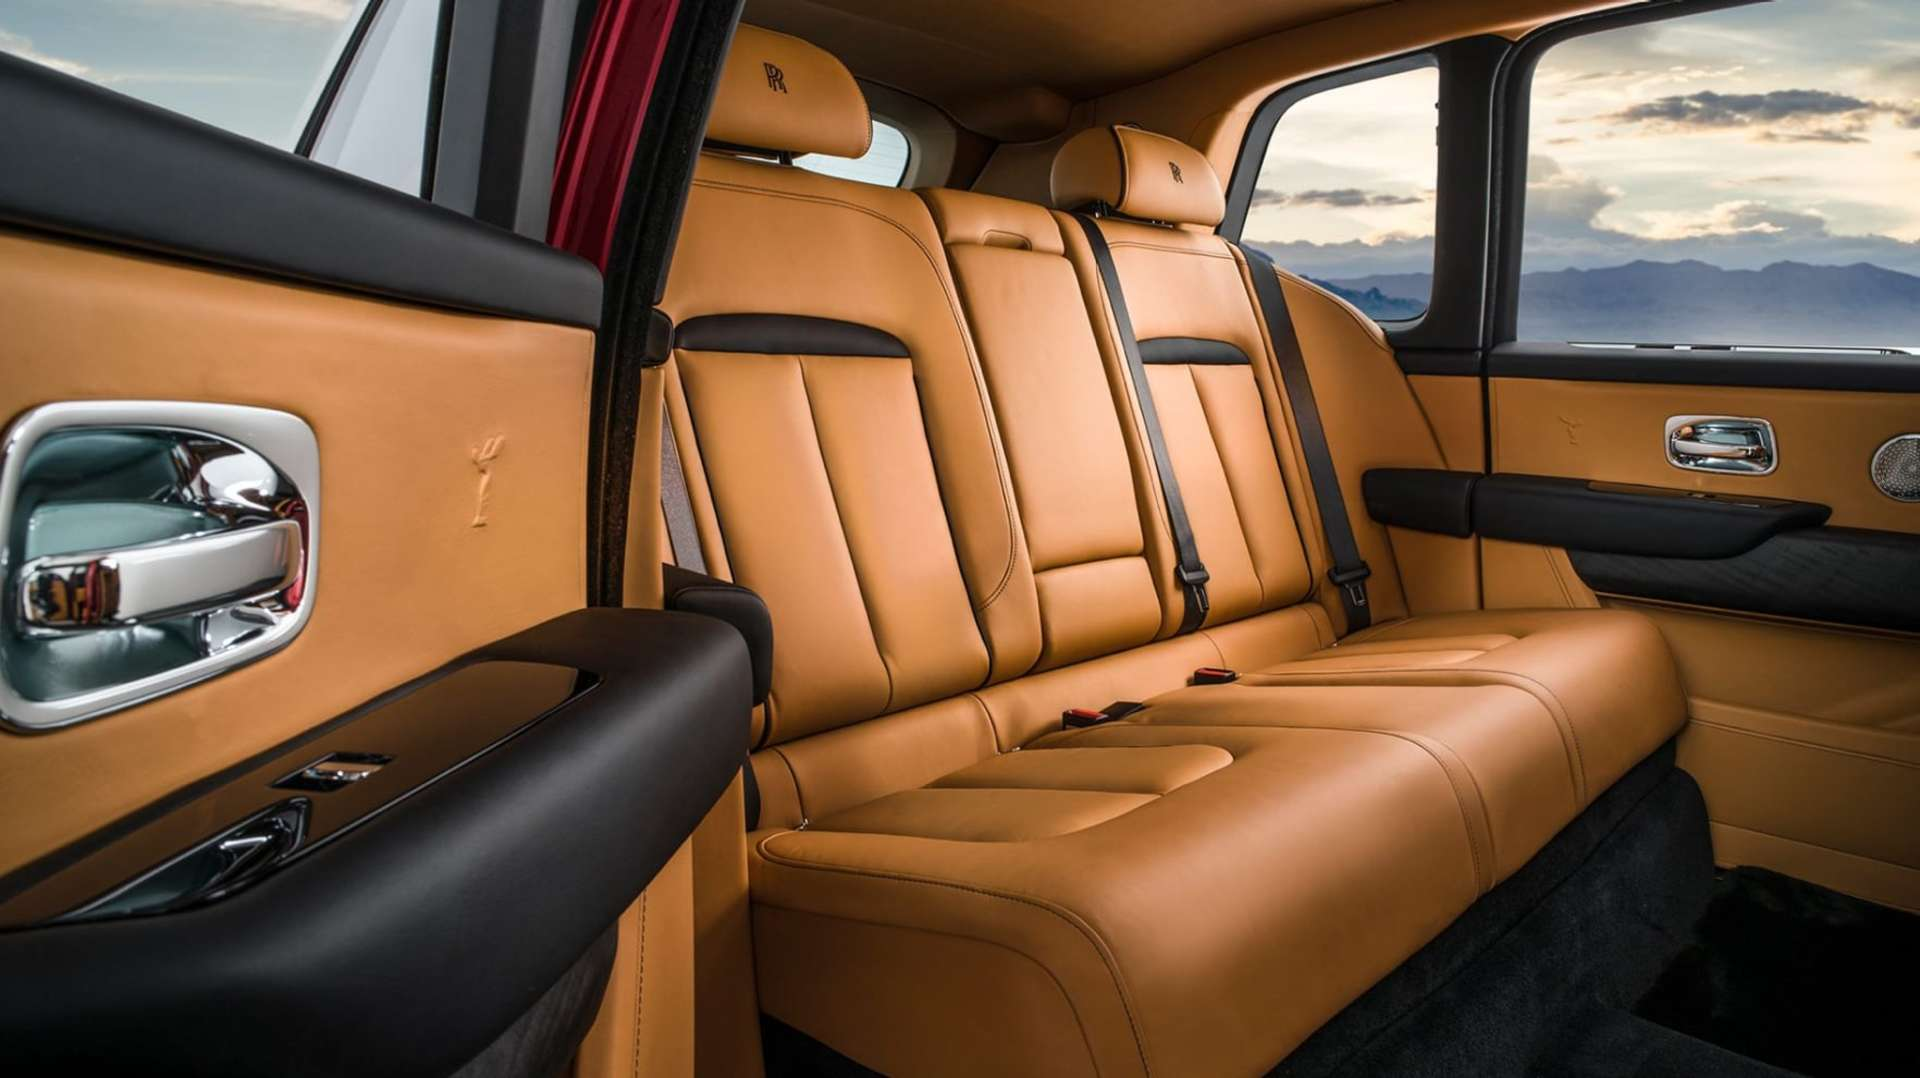 The brown leather interior of a Rolls-Royce Cullinan motor car